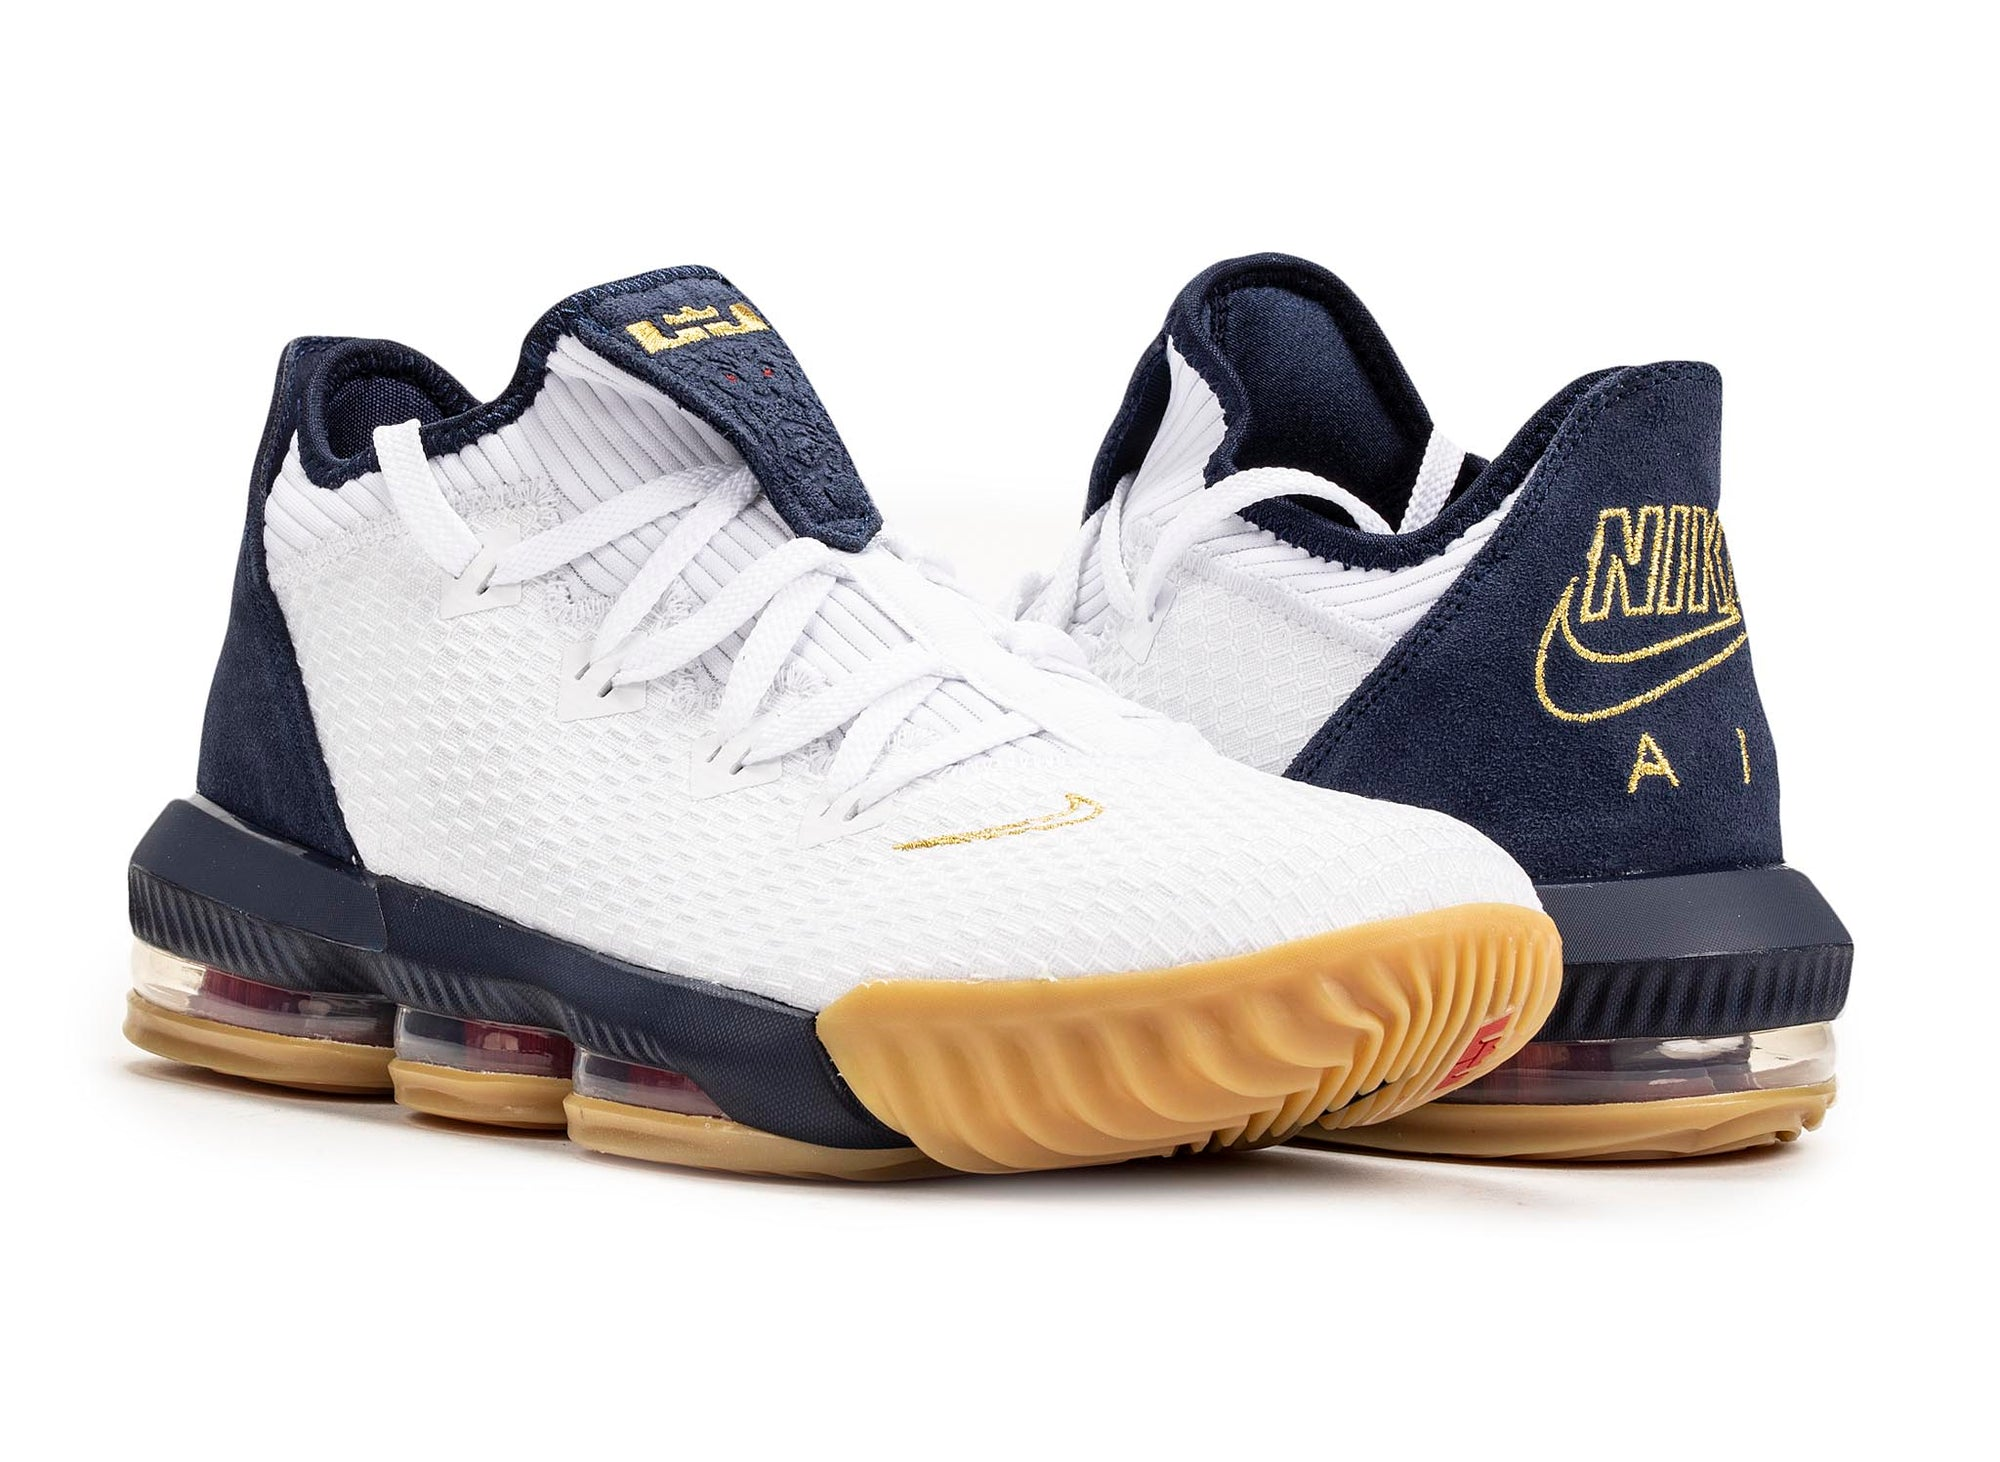 new style b405a d4c0d Nike LeBron 16 Low 'Team USA'